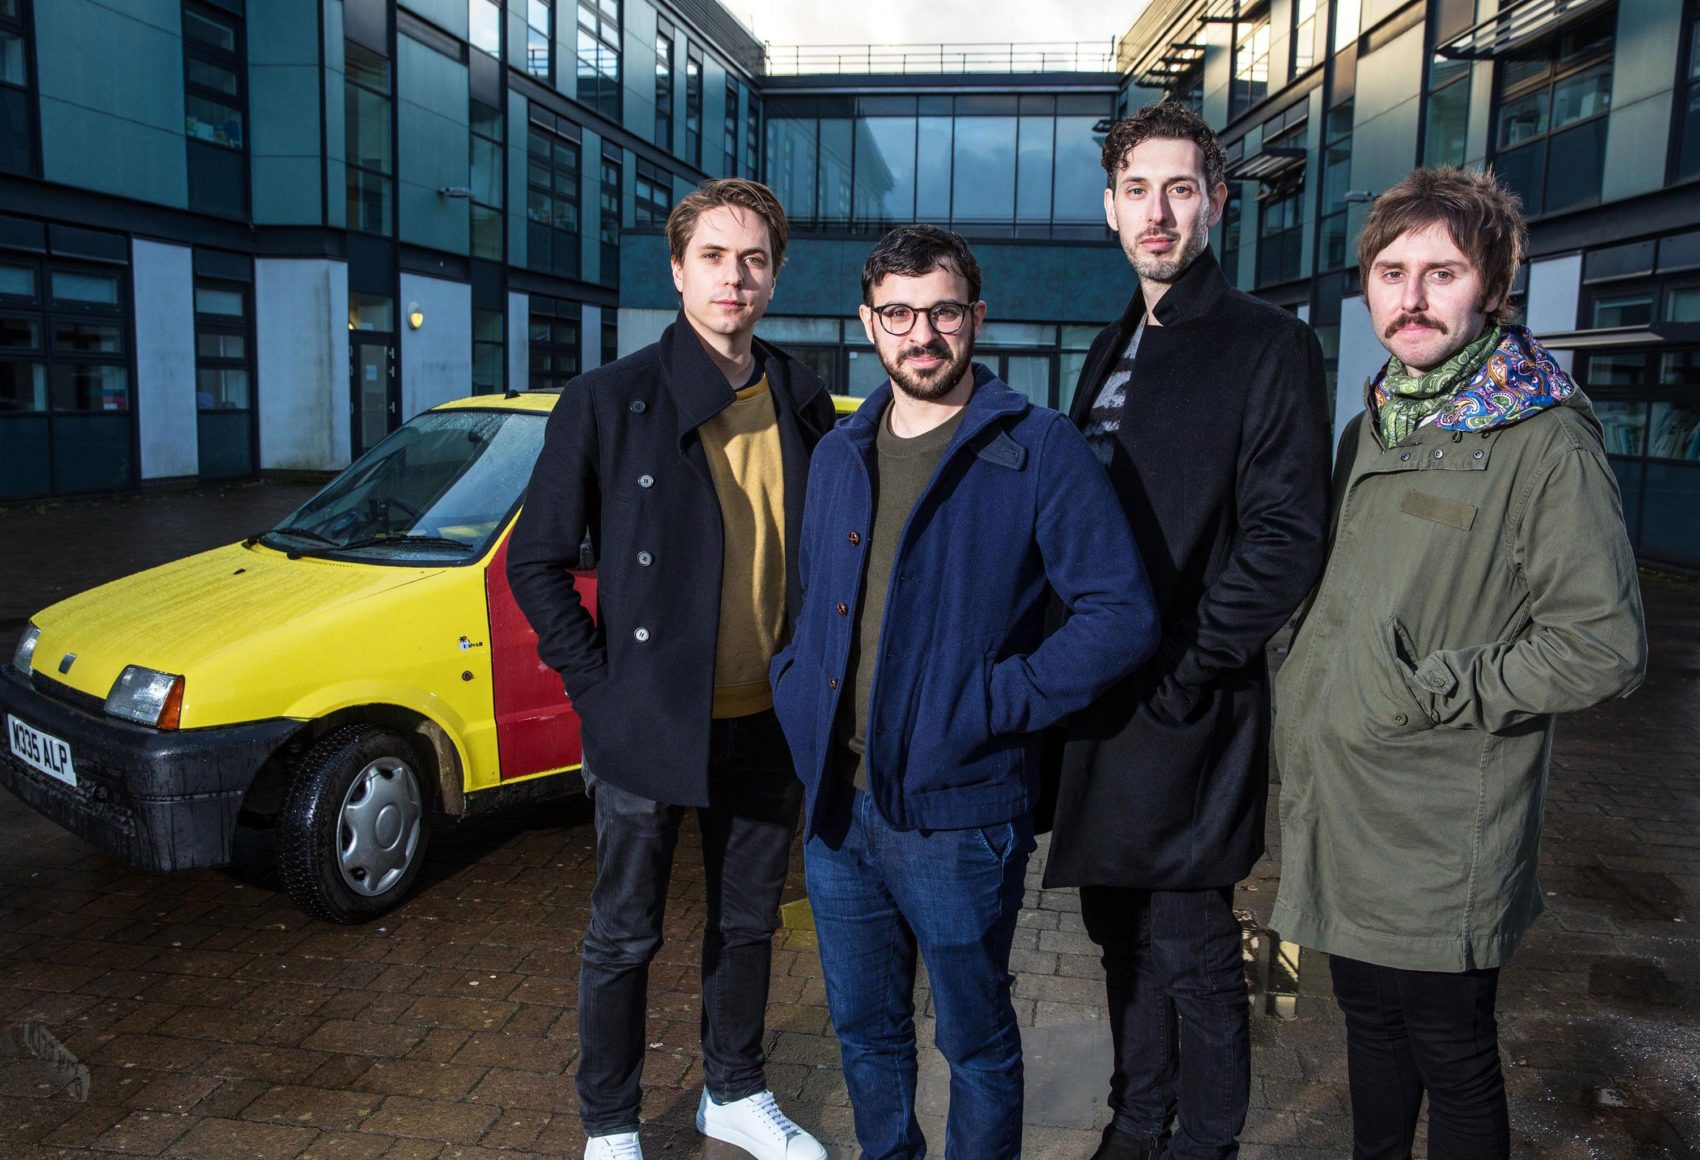 The Inbetweeners Actor James Buckley Calls Reunion A Disaster And Explains What Went Wrong